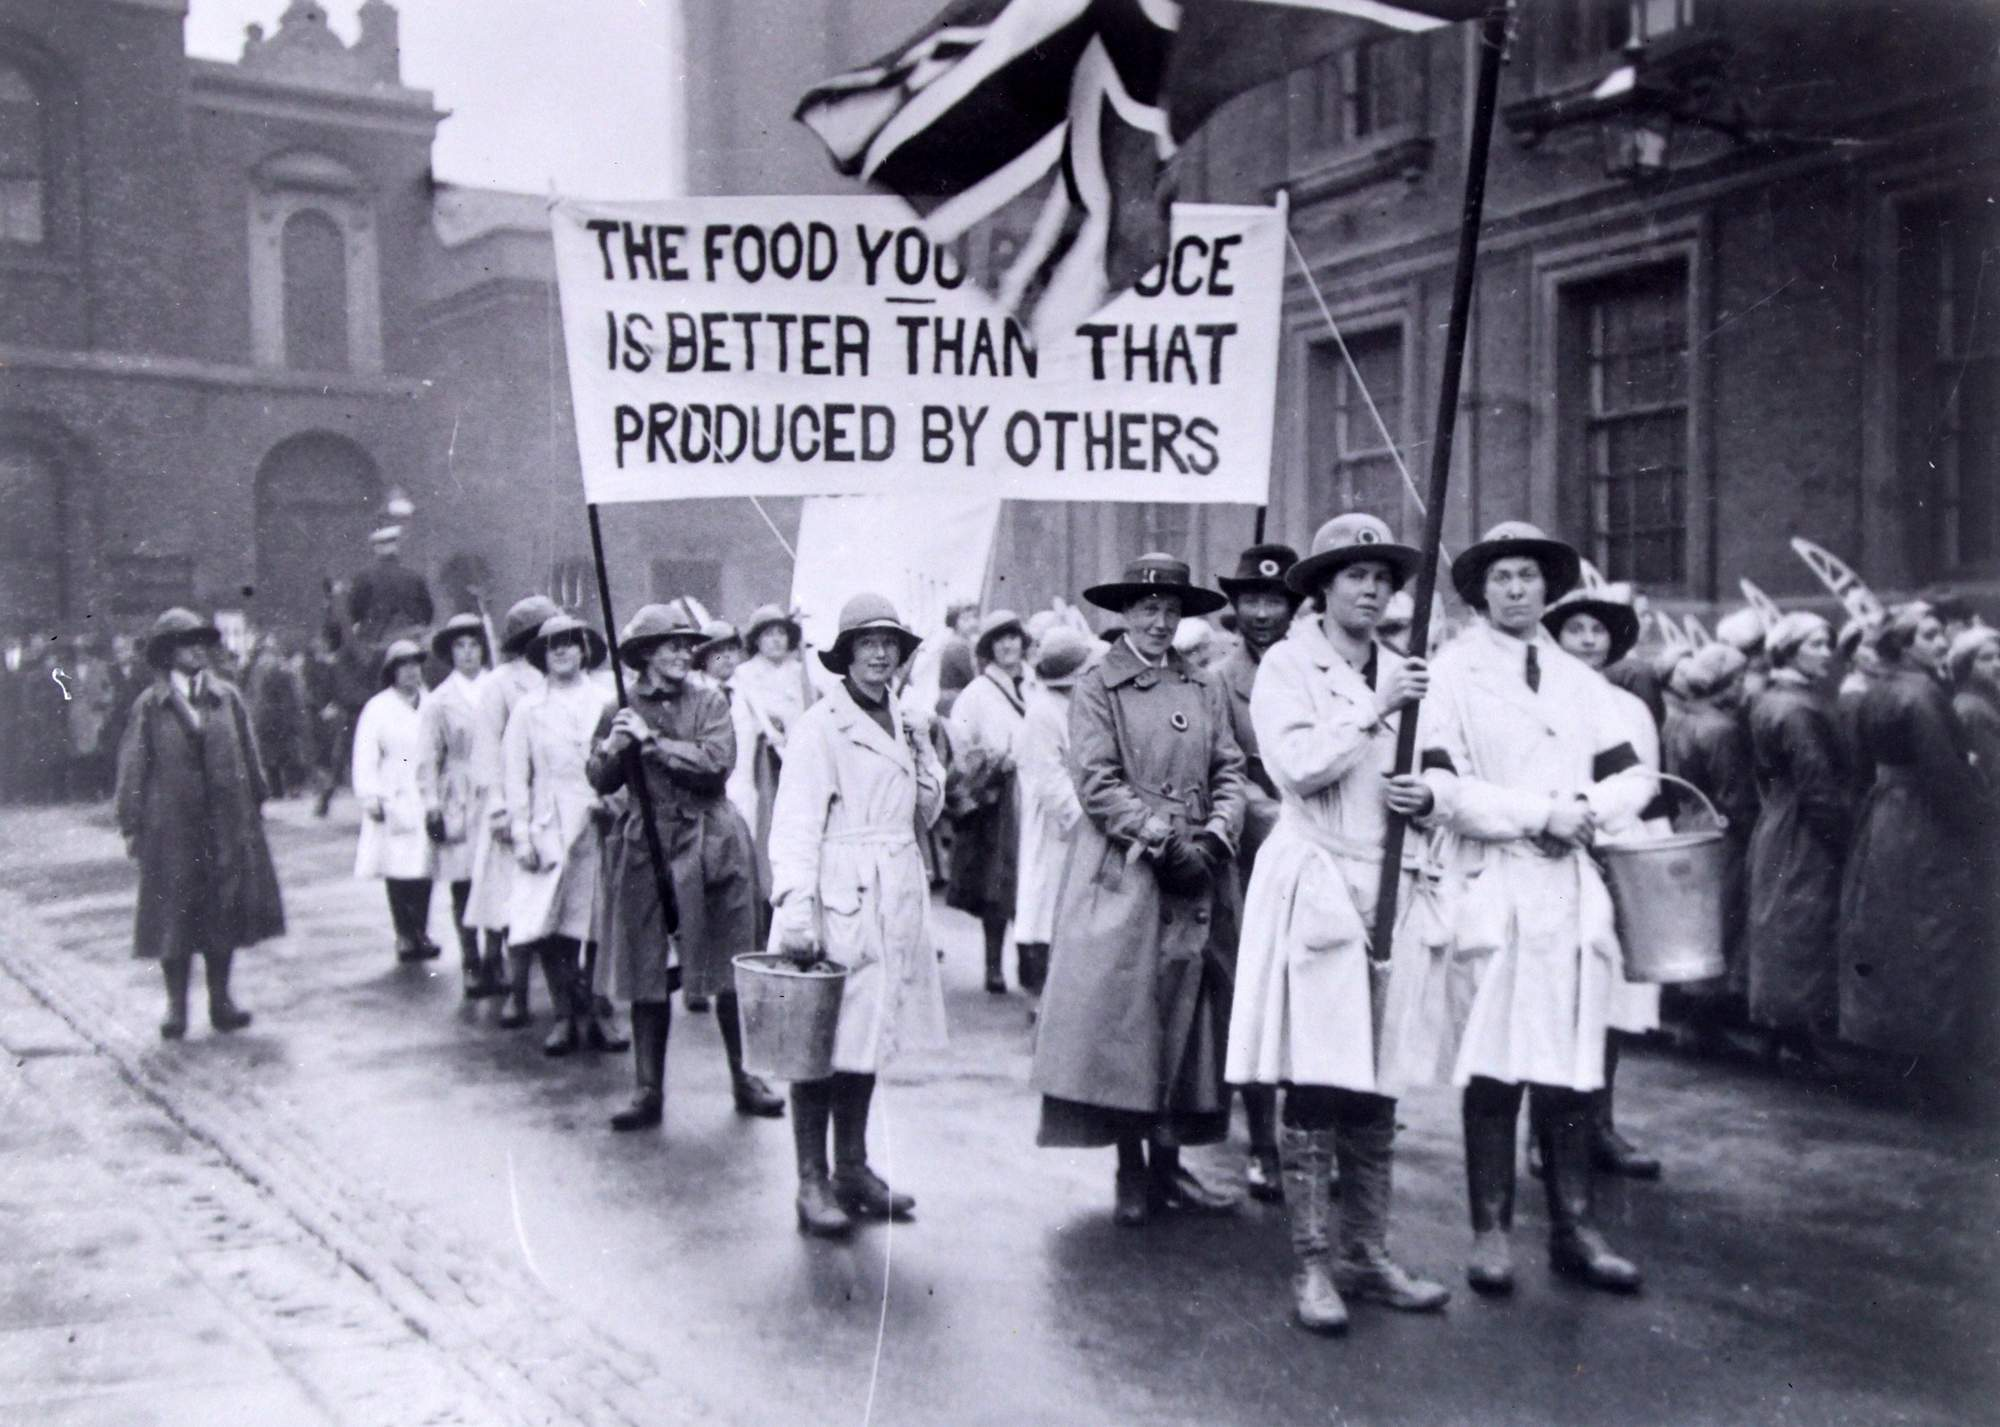 The Women's Land Army was a British civilian organisation created so women could work in agriculture, replacing men who had been called up. Seen here on parade outside the Town Hall. - Leicestershire Record Office